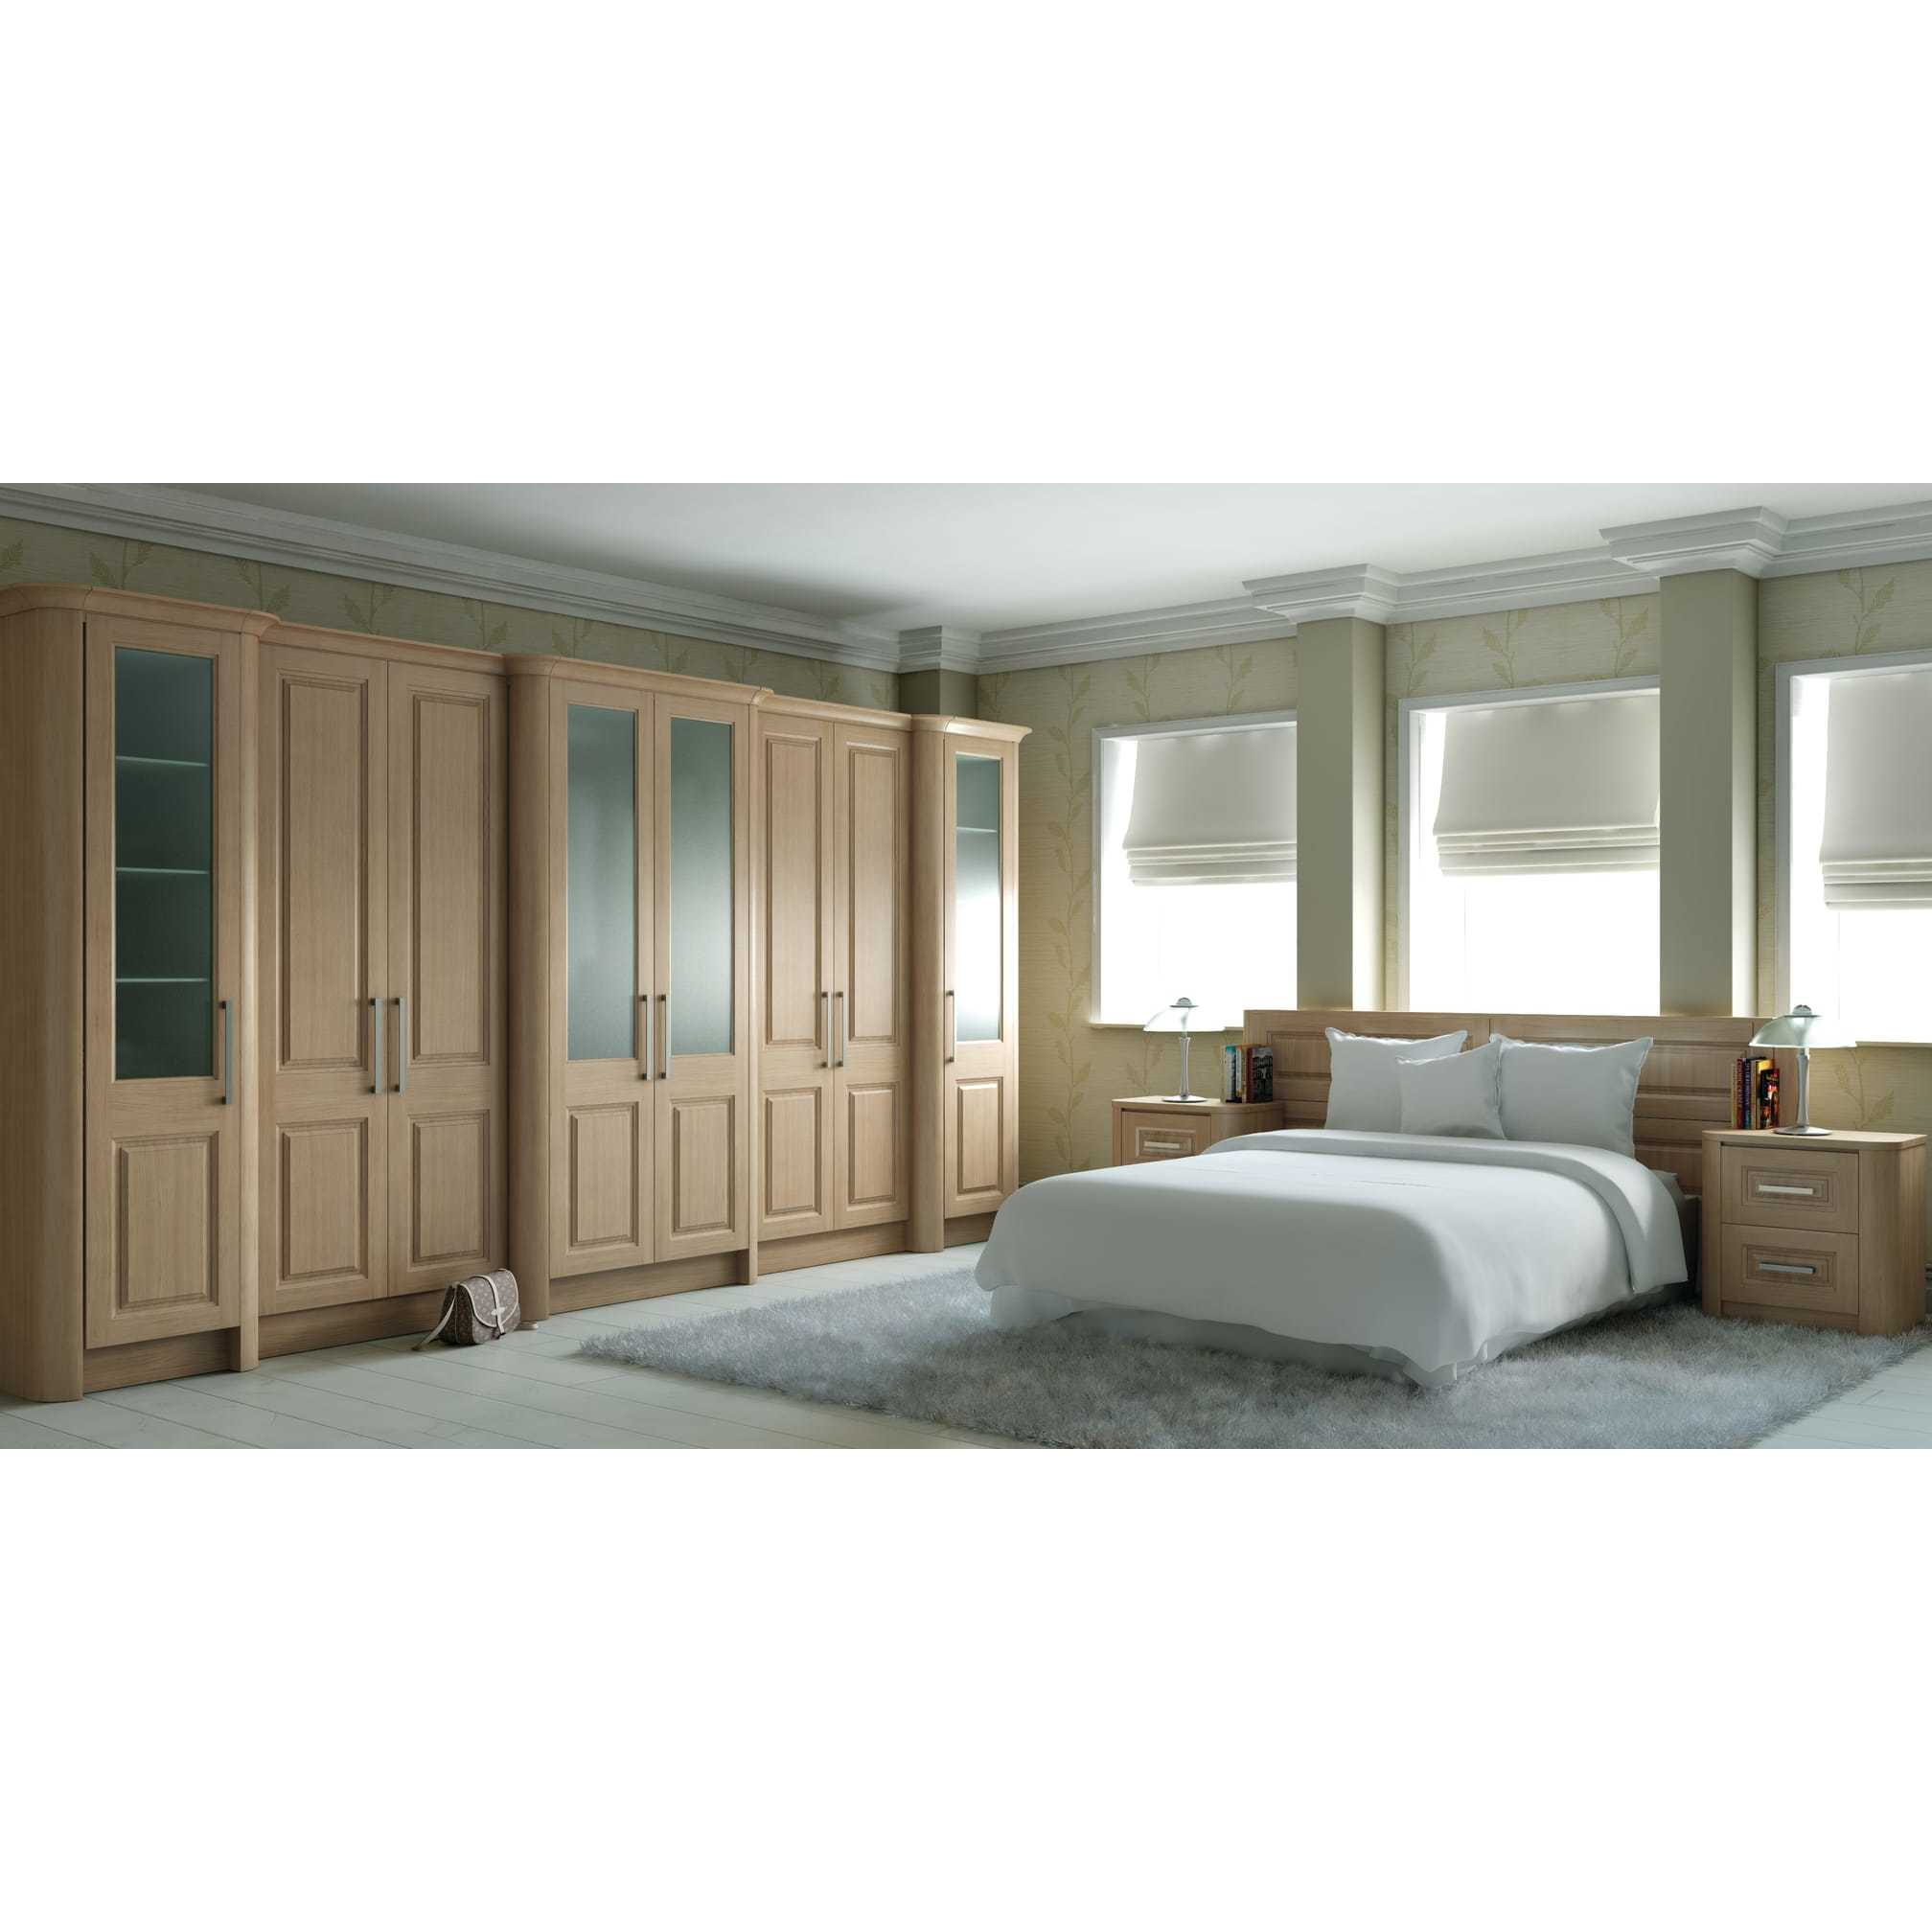 Langtry Fitted Furniture - Ely, Cambridgeshire CB7 5UE - 01353 725380 | ShowMeLocal.com